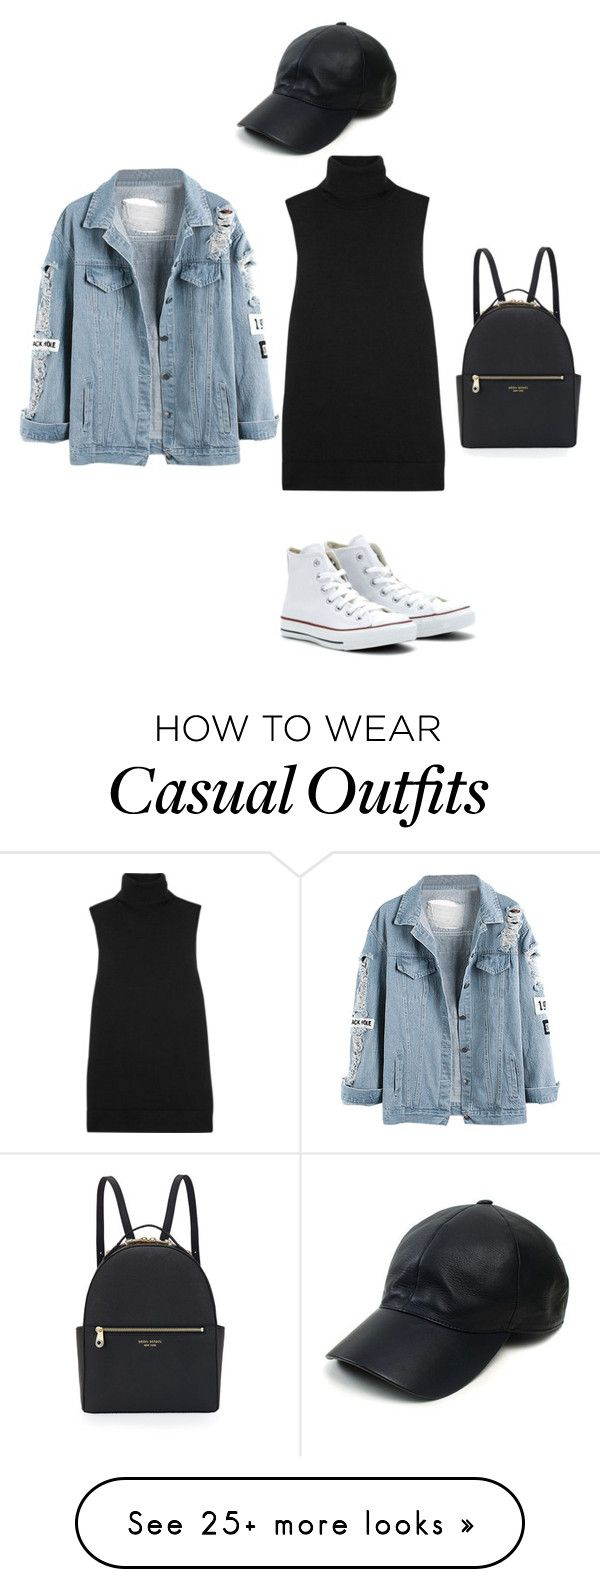 """""""Casually chic"""" by cynthiantinunu on Polyvore featuring Vianel, Converse, Henri Bendel, Equipment, women's clothing, women, female, woman, misses and juniors"""